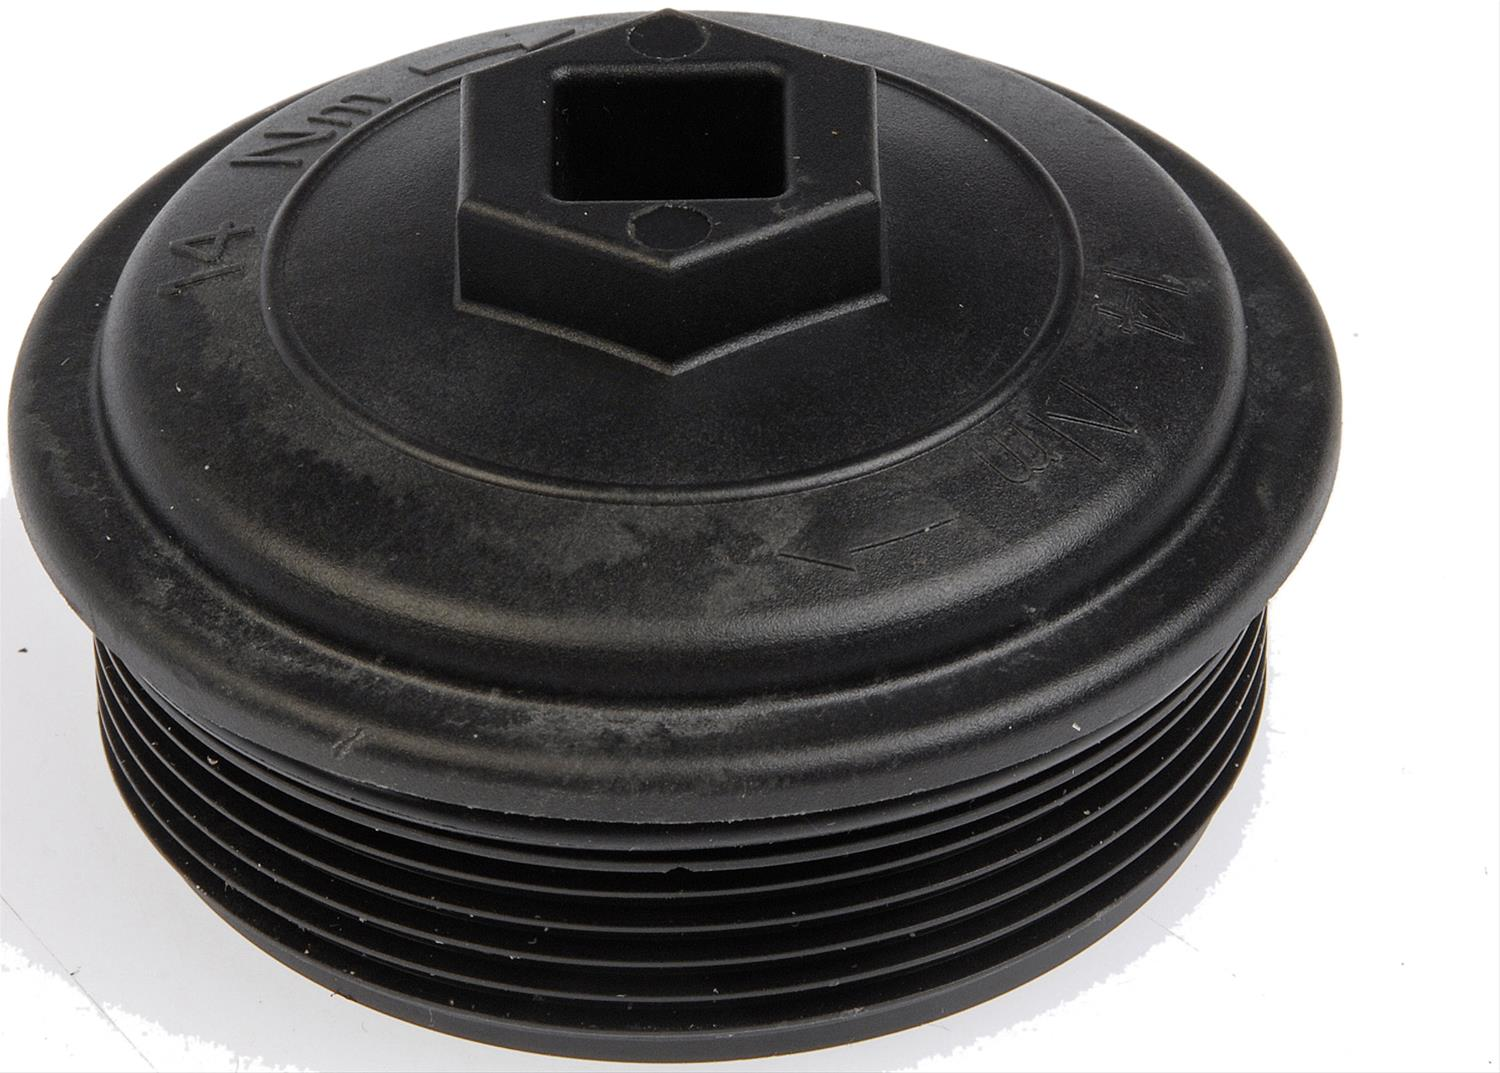 hight resolution of dorman fuel filter caps 904 209 free shipping on orders over 99 at summit racing